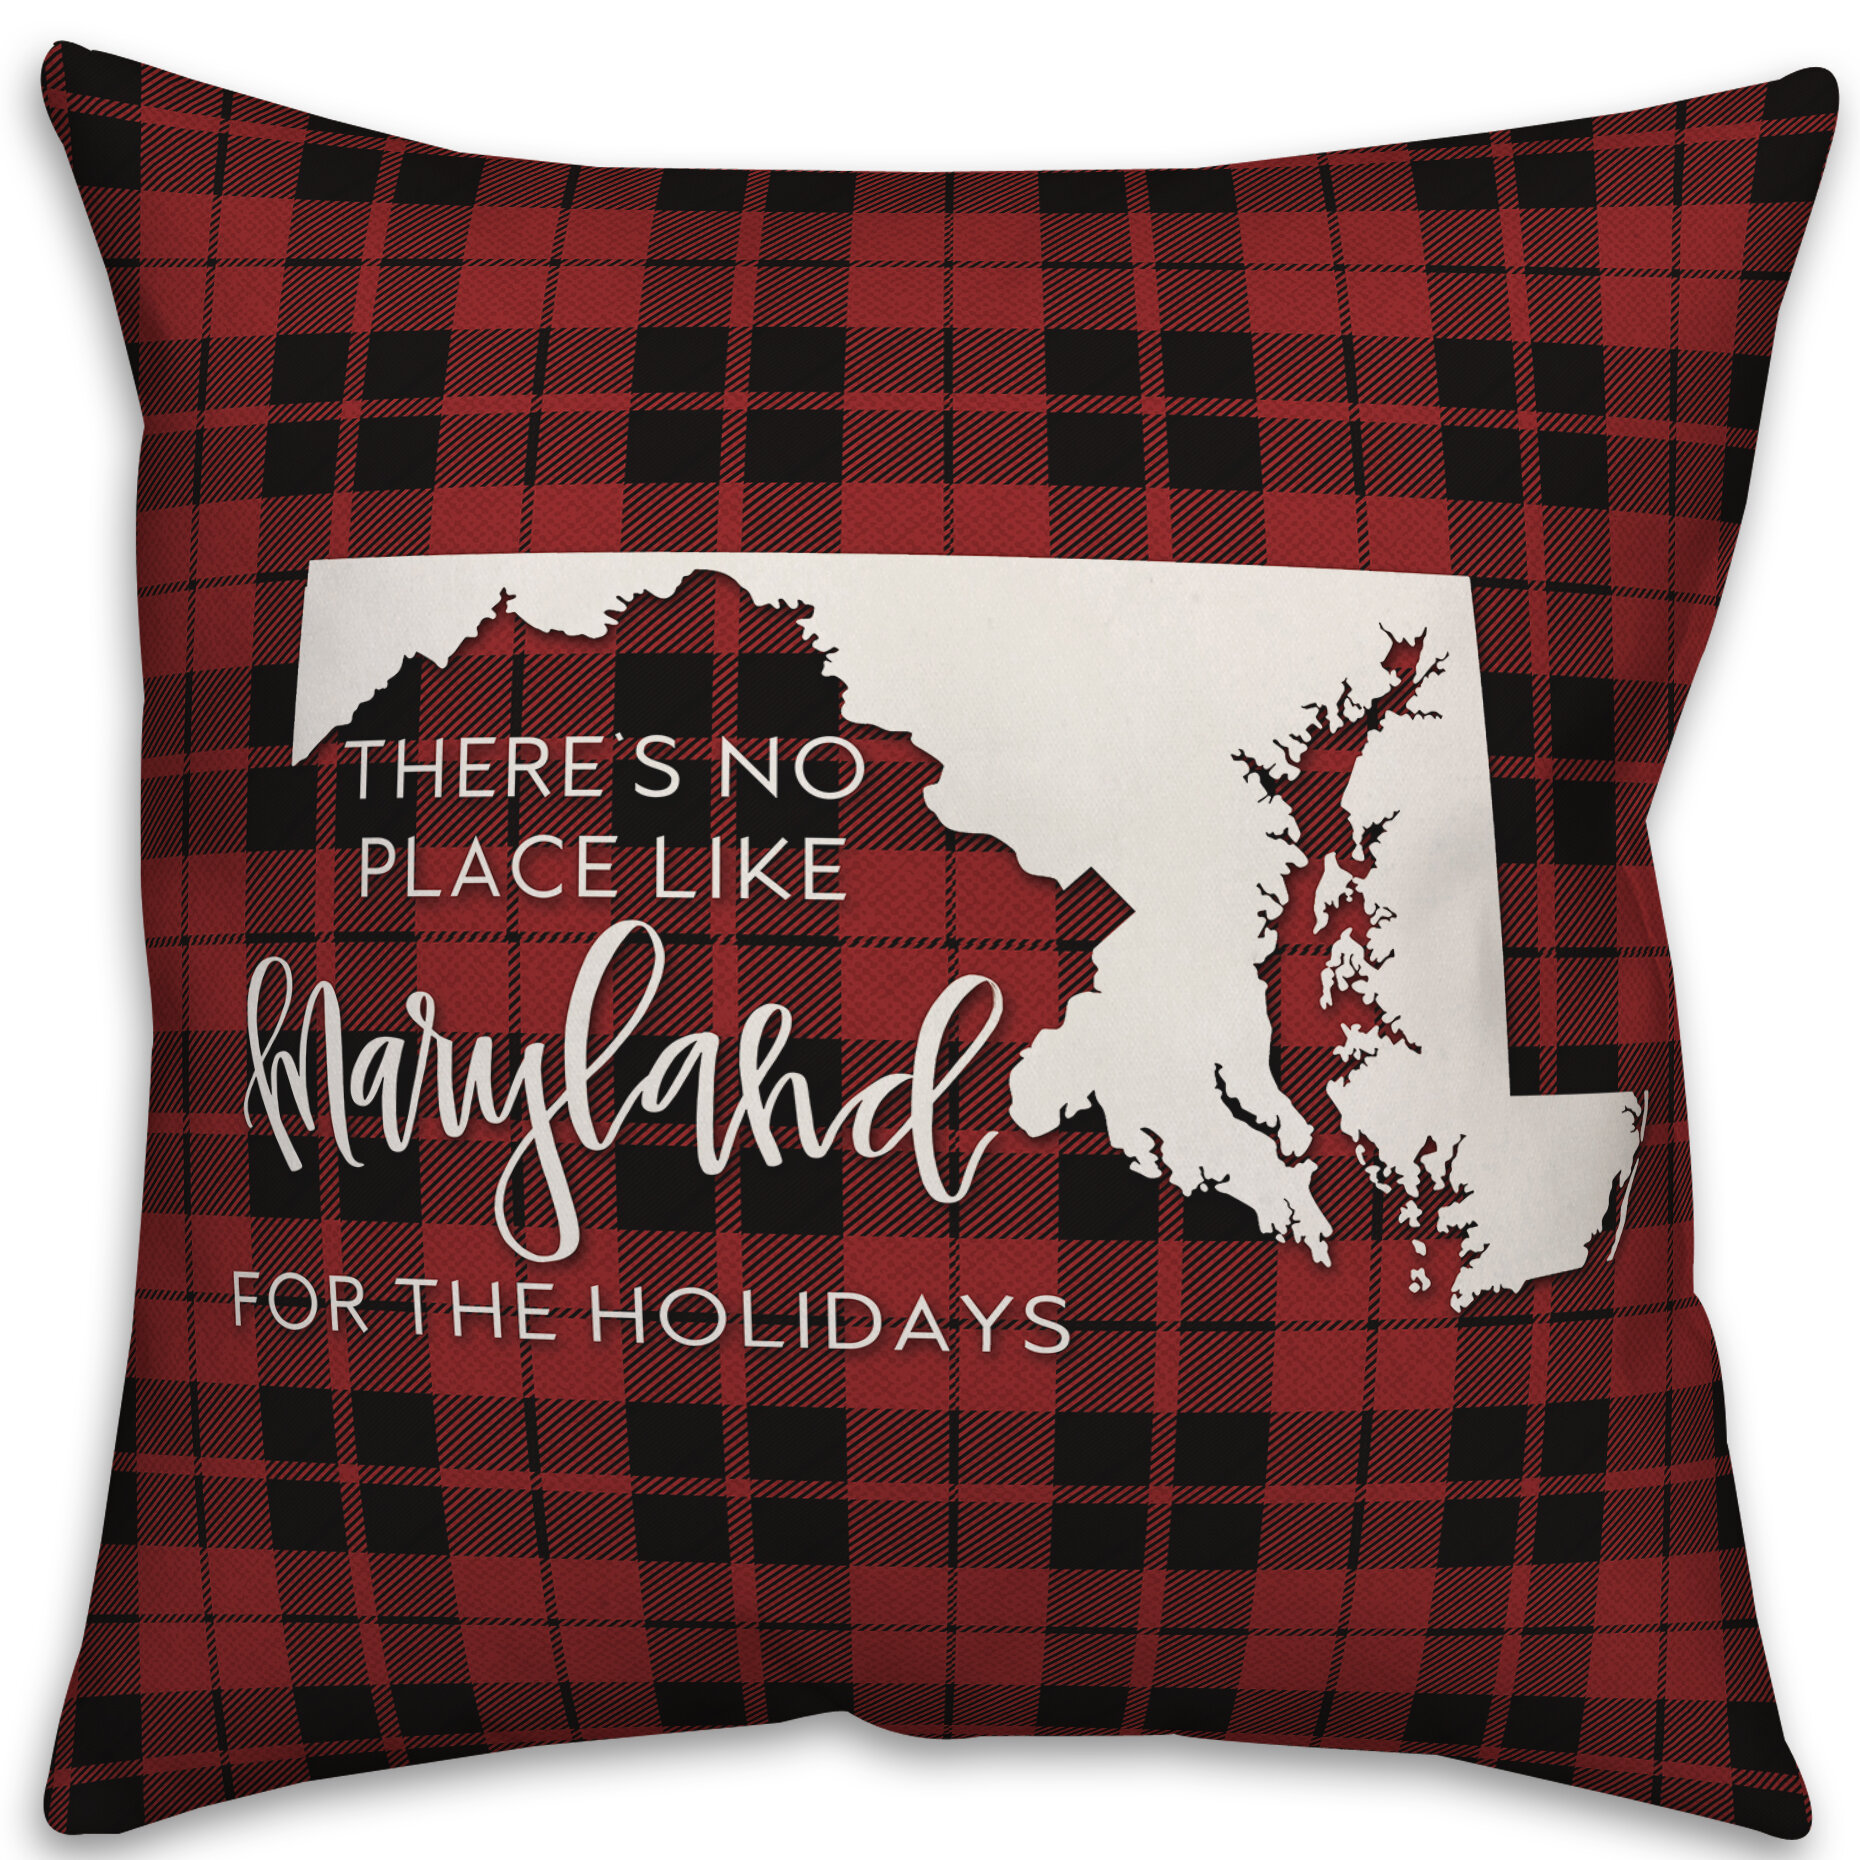 The Holiday Aisle Grace There S No Place Like Maryland For The Holidays Throw Pillow Cover Wayfair